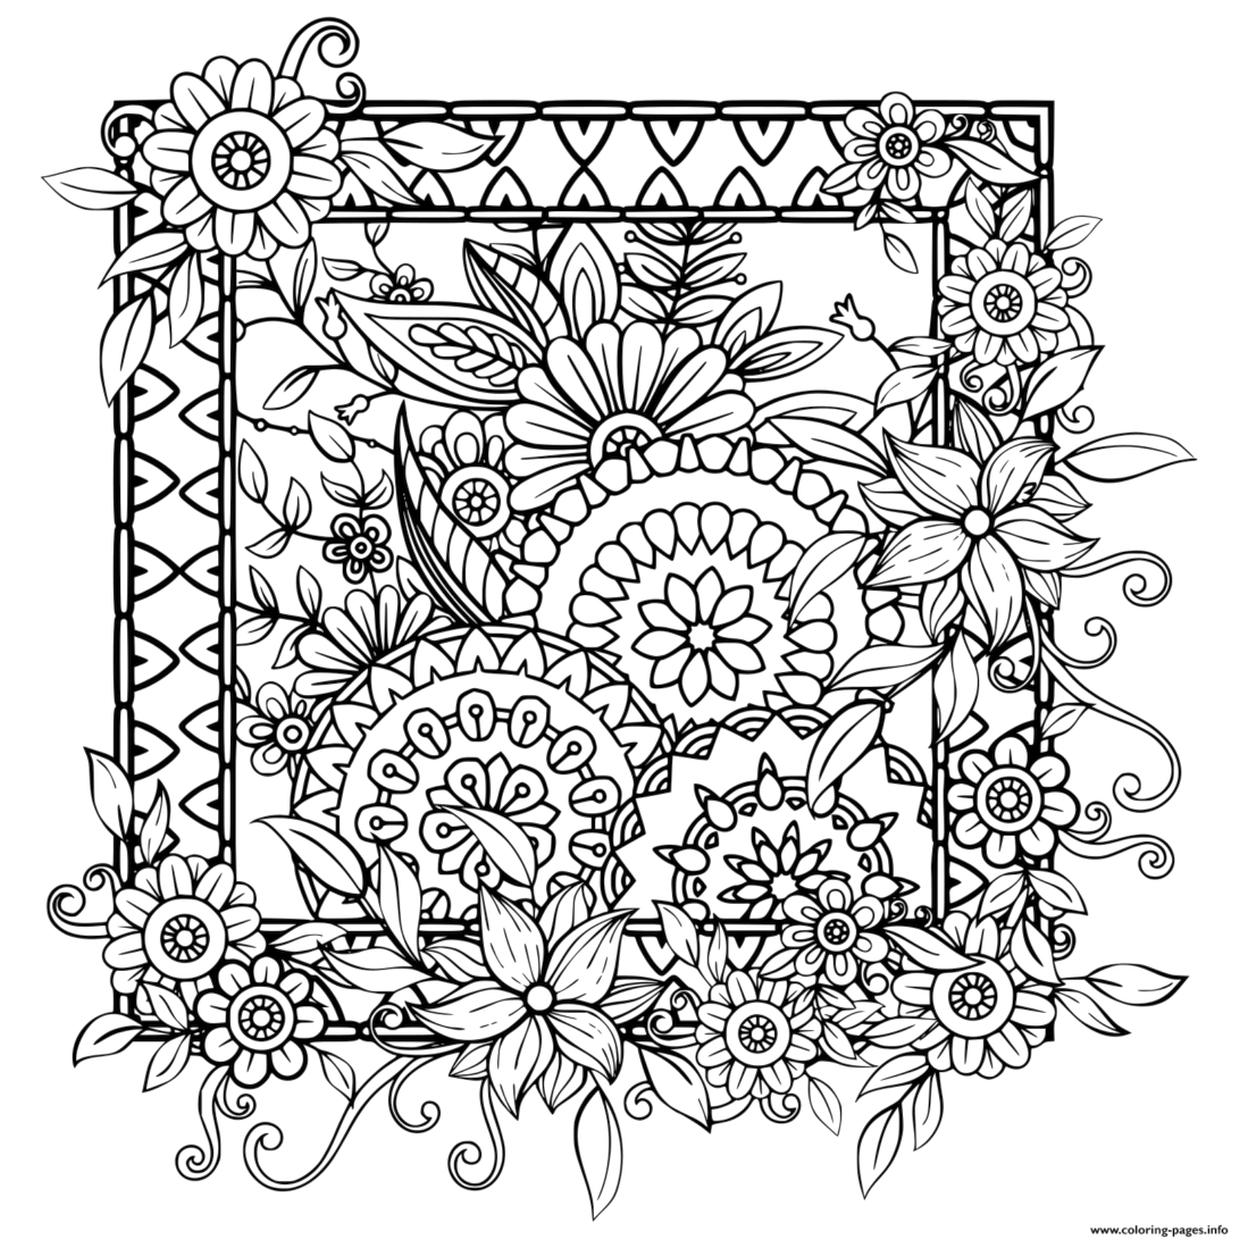 Flower Pattern Coloring Pages to Print for Adults wtz6